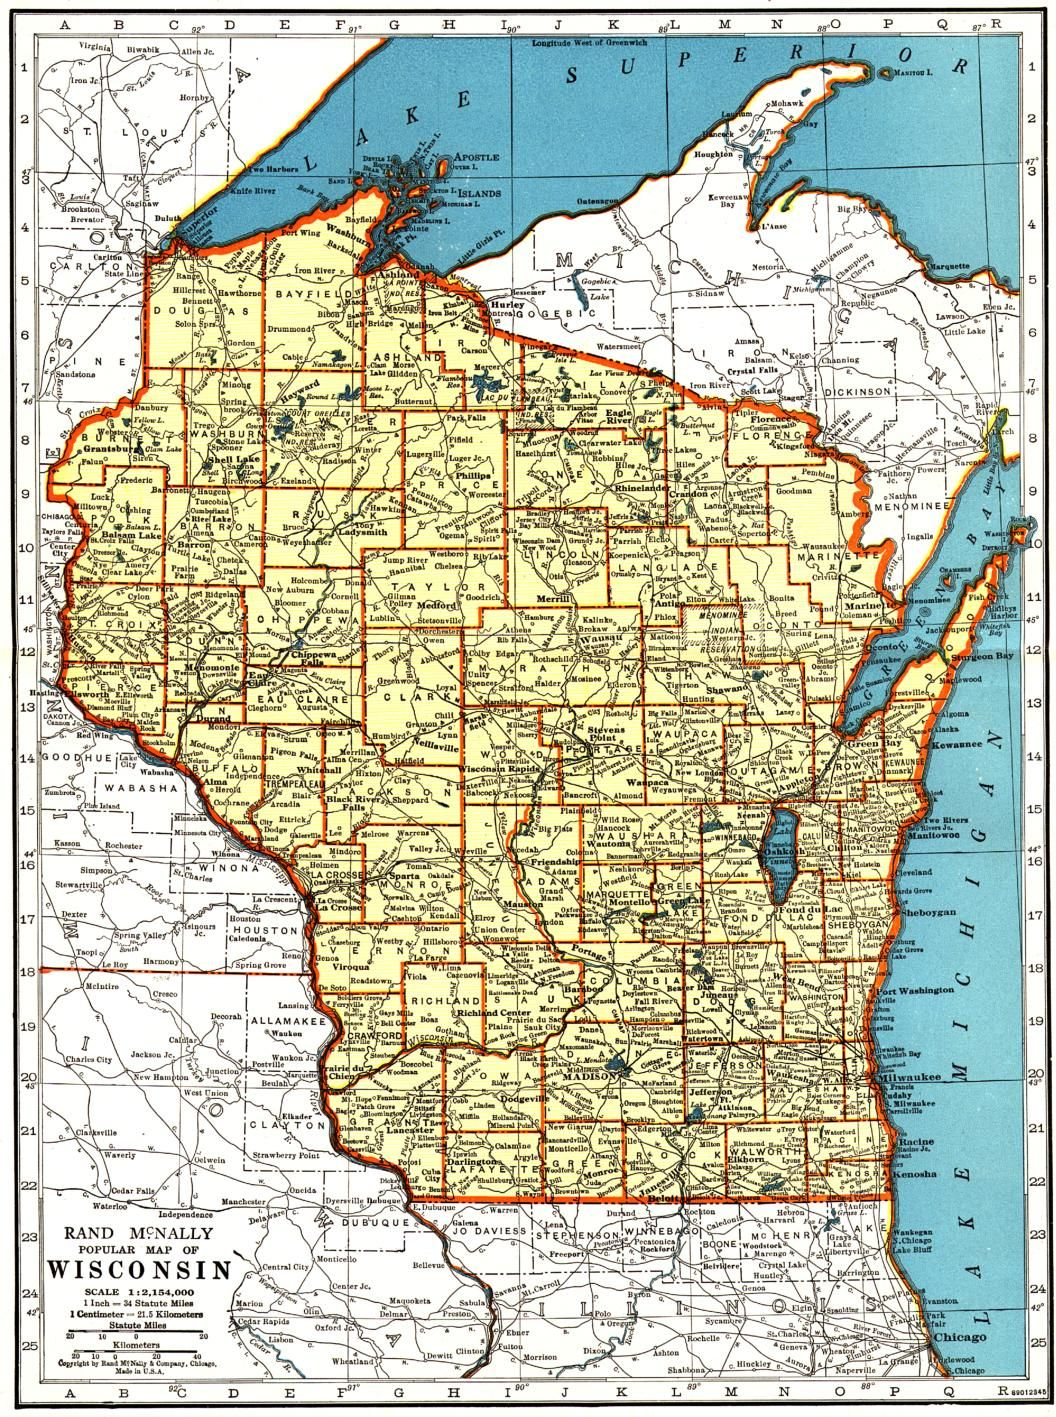 Rand McNally Map Of Wisconsin From The Wisconsin Digital - Wisconsin road map usa